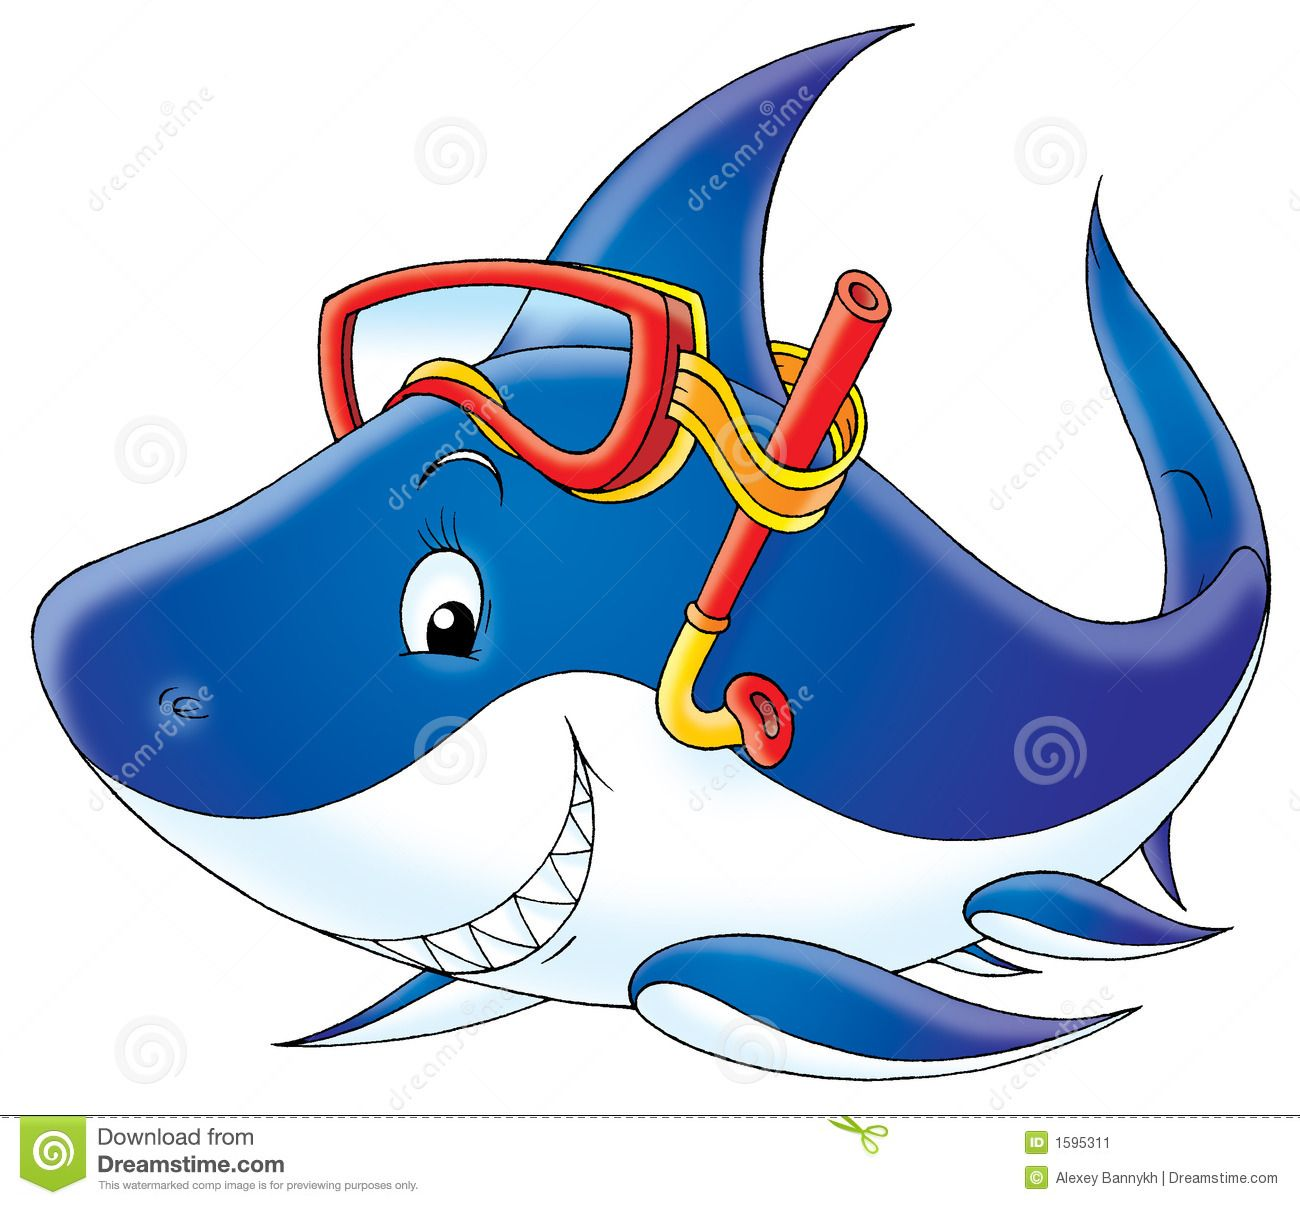 Clipart whale happy. Shark panda free images